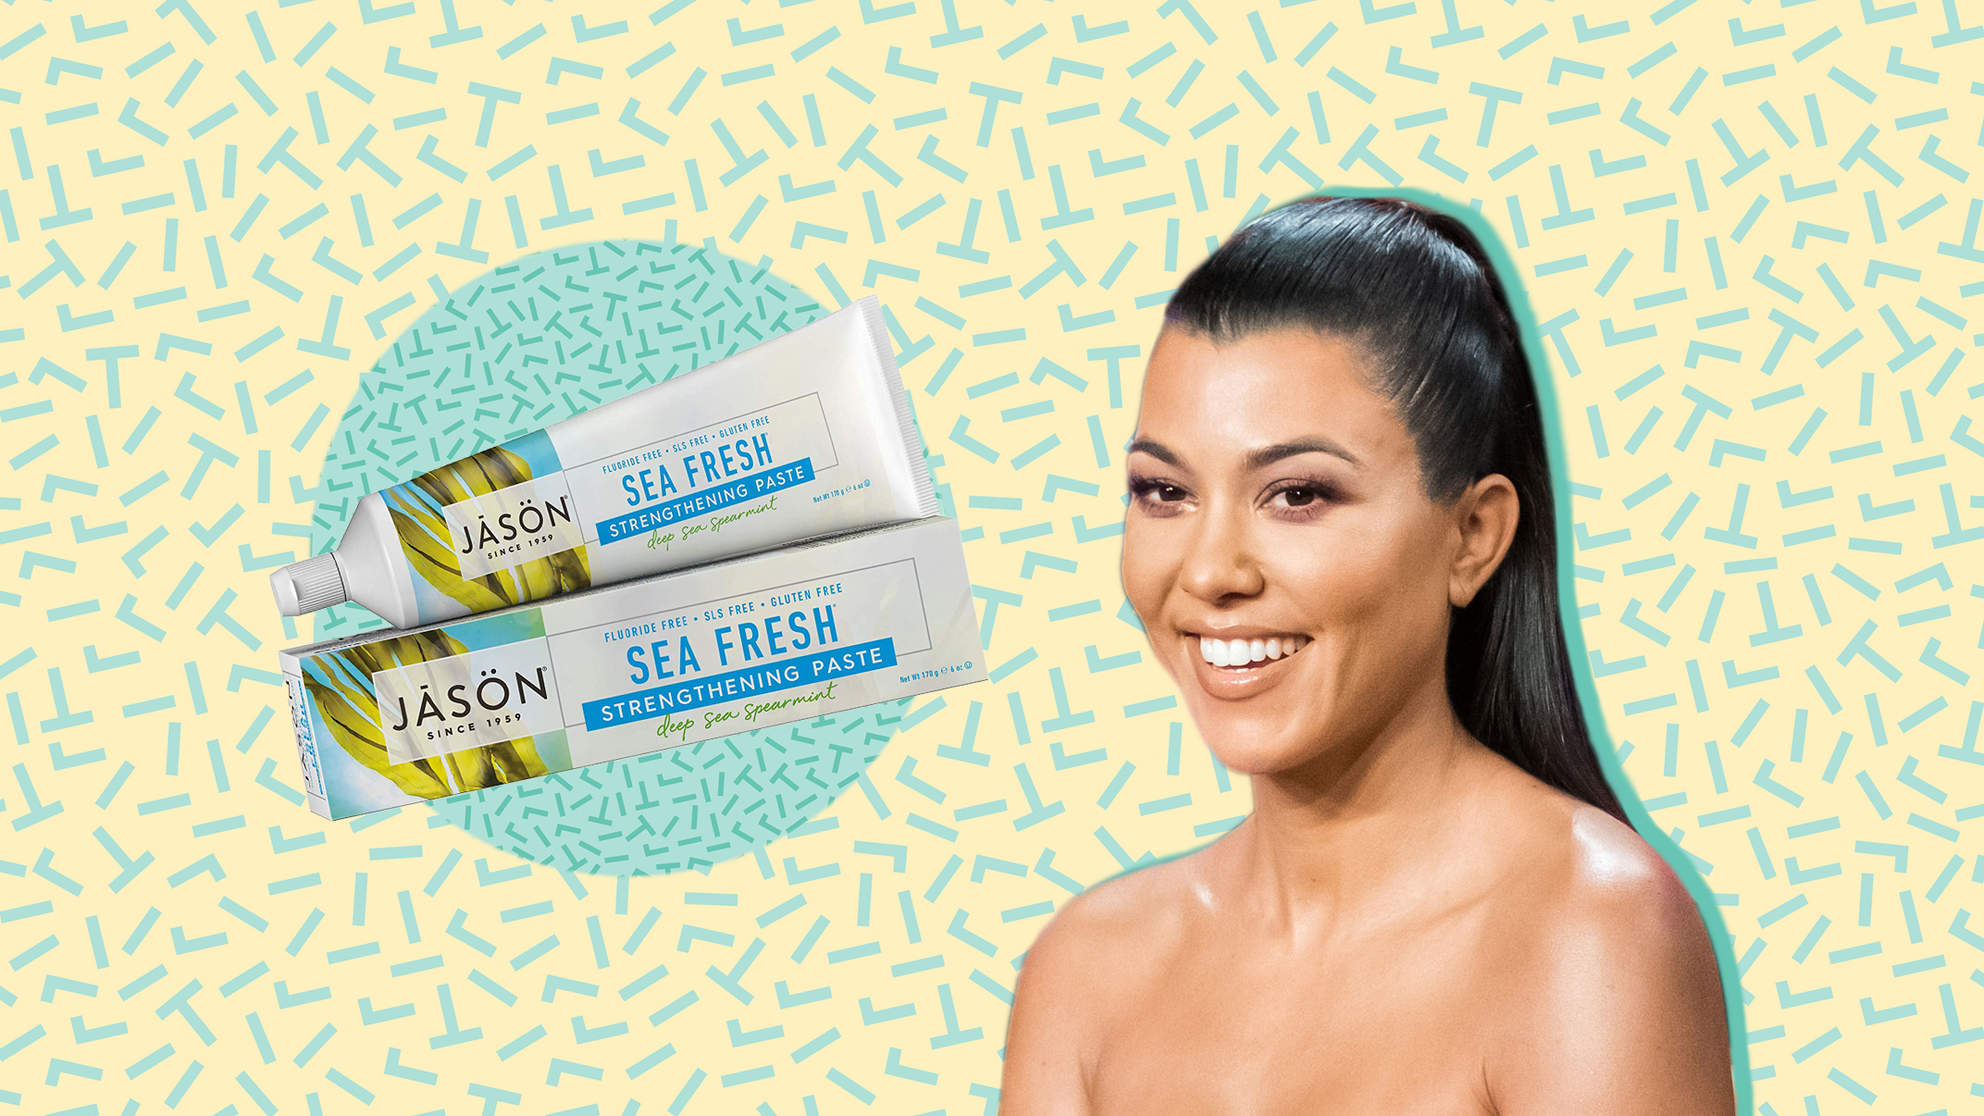 Kourtney Kardashian's Secret for White Teeth Is This $4 Toothpaste From Amazon